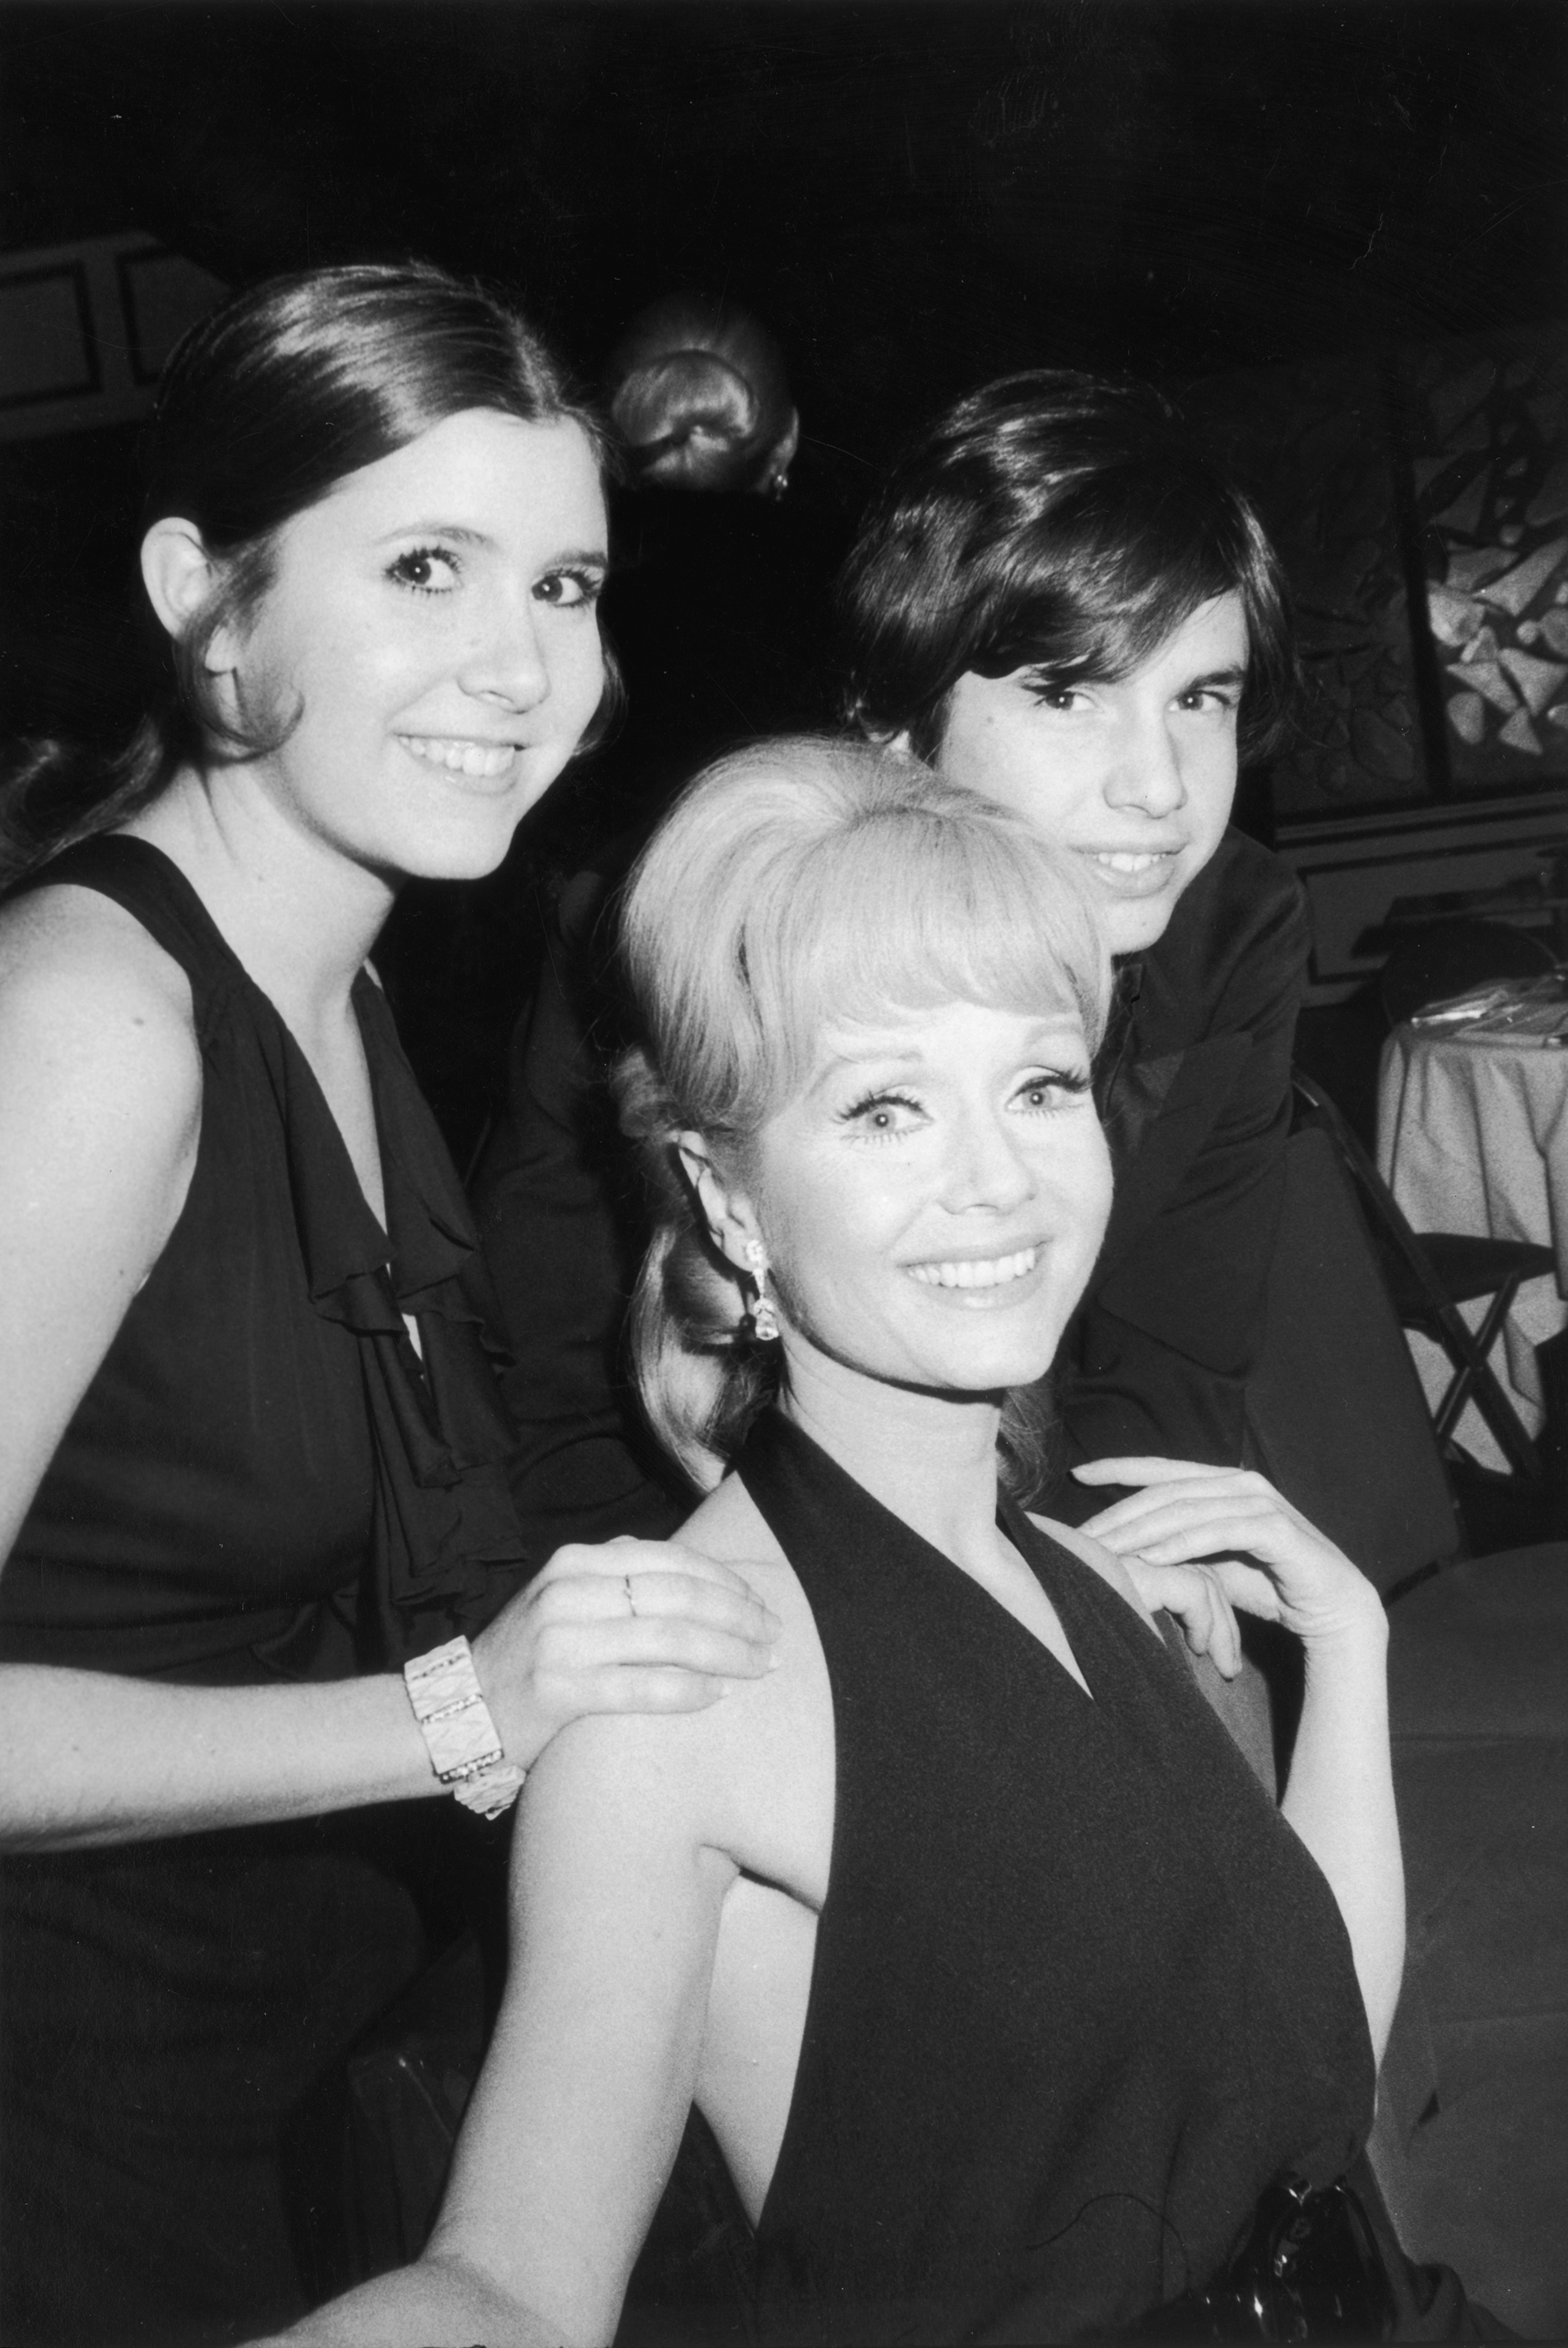 Debbie Reynolds poses her children,  Carrie Fisher and Todd Fisher, as they attend the opening night party for the Broadway musical revival 'Irene,' in which Reynolds starred, New York City, March, 13 1973.